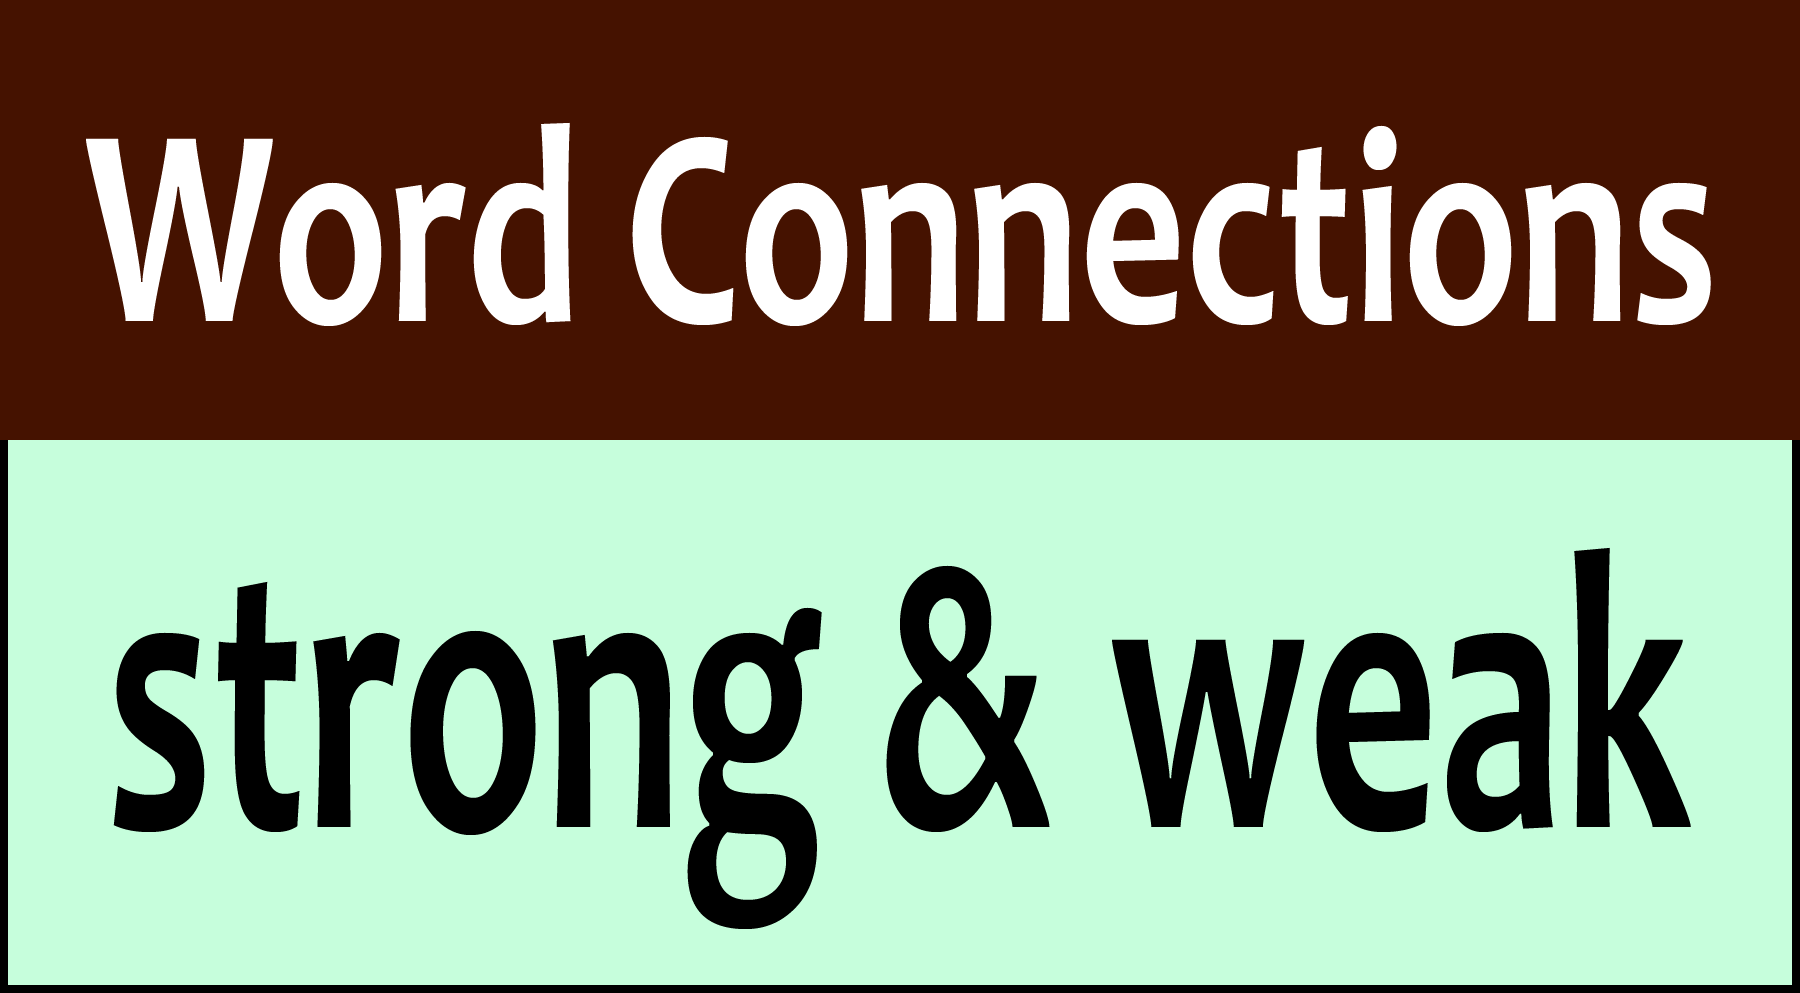 Word Connections: Strong & Weak - The Philipendium - Medium